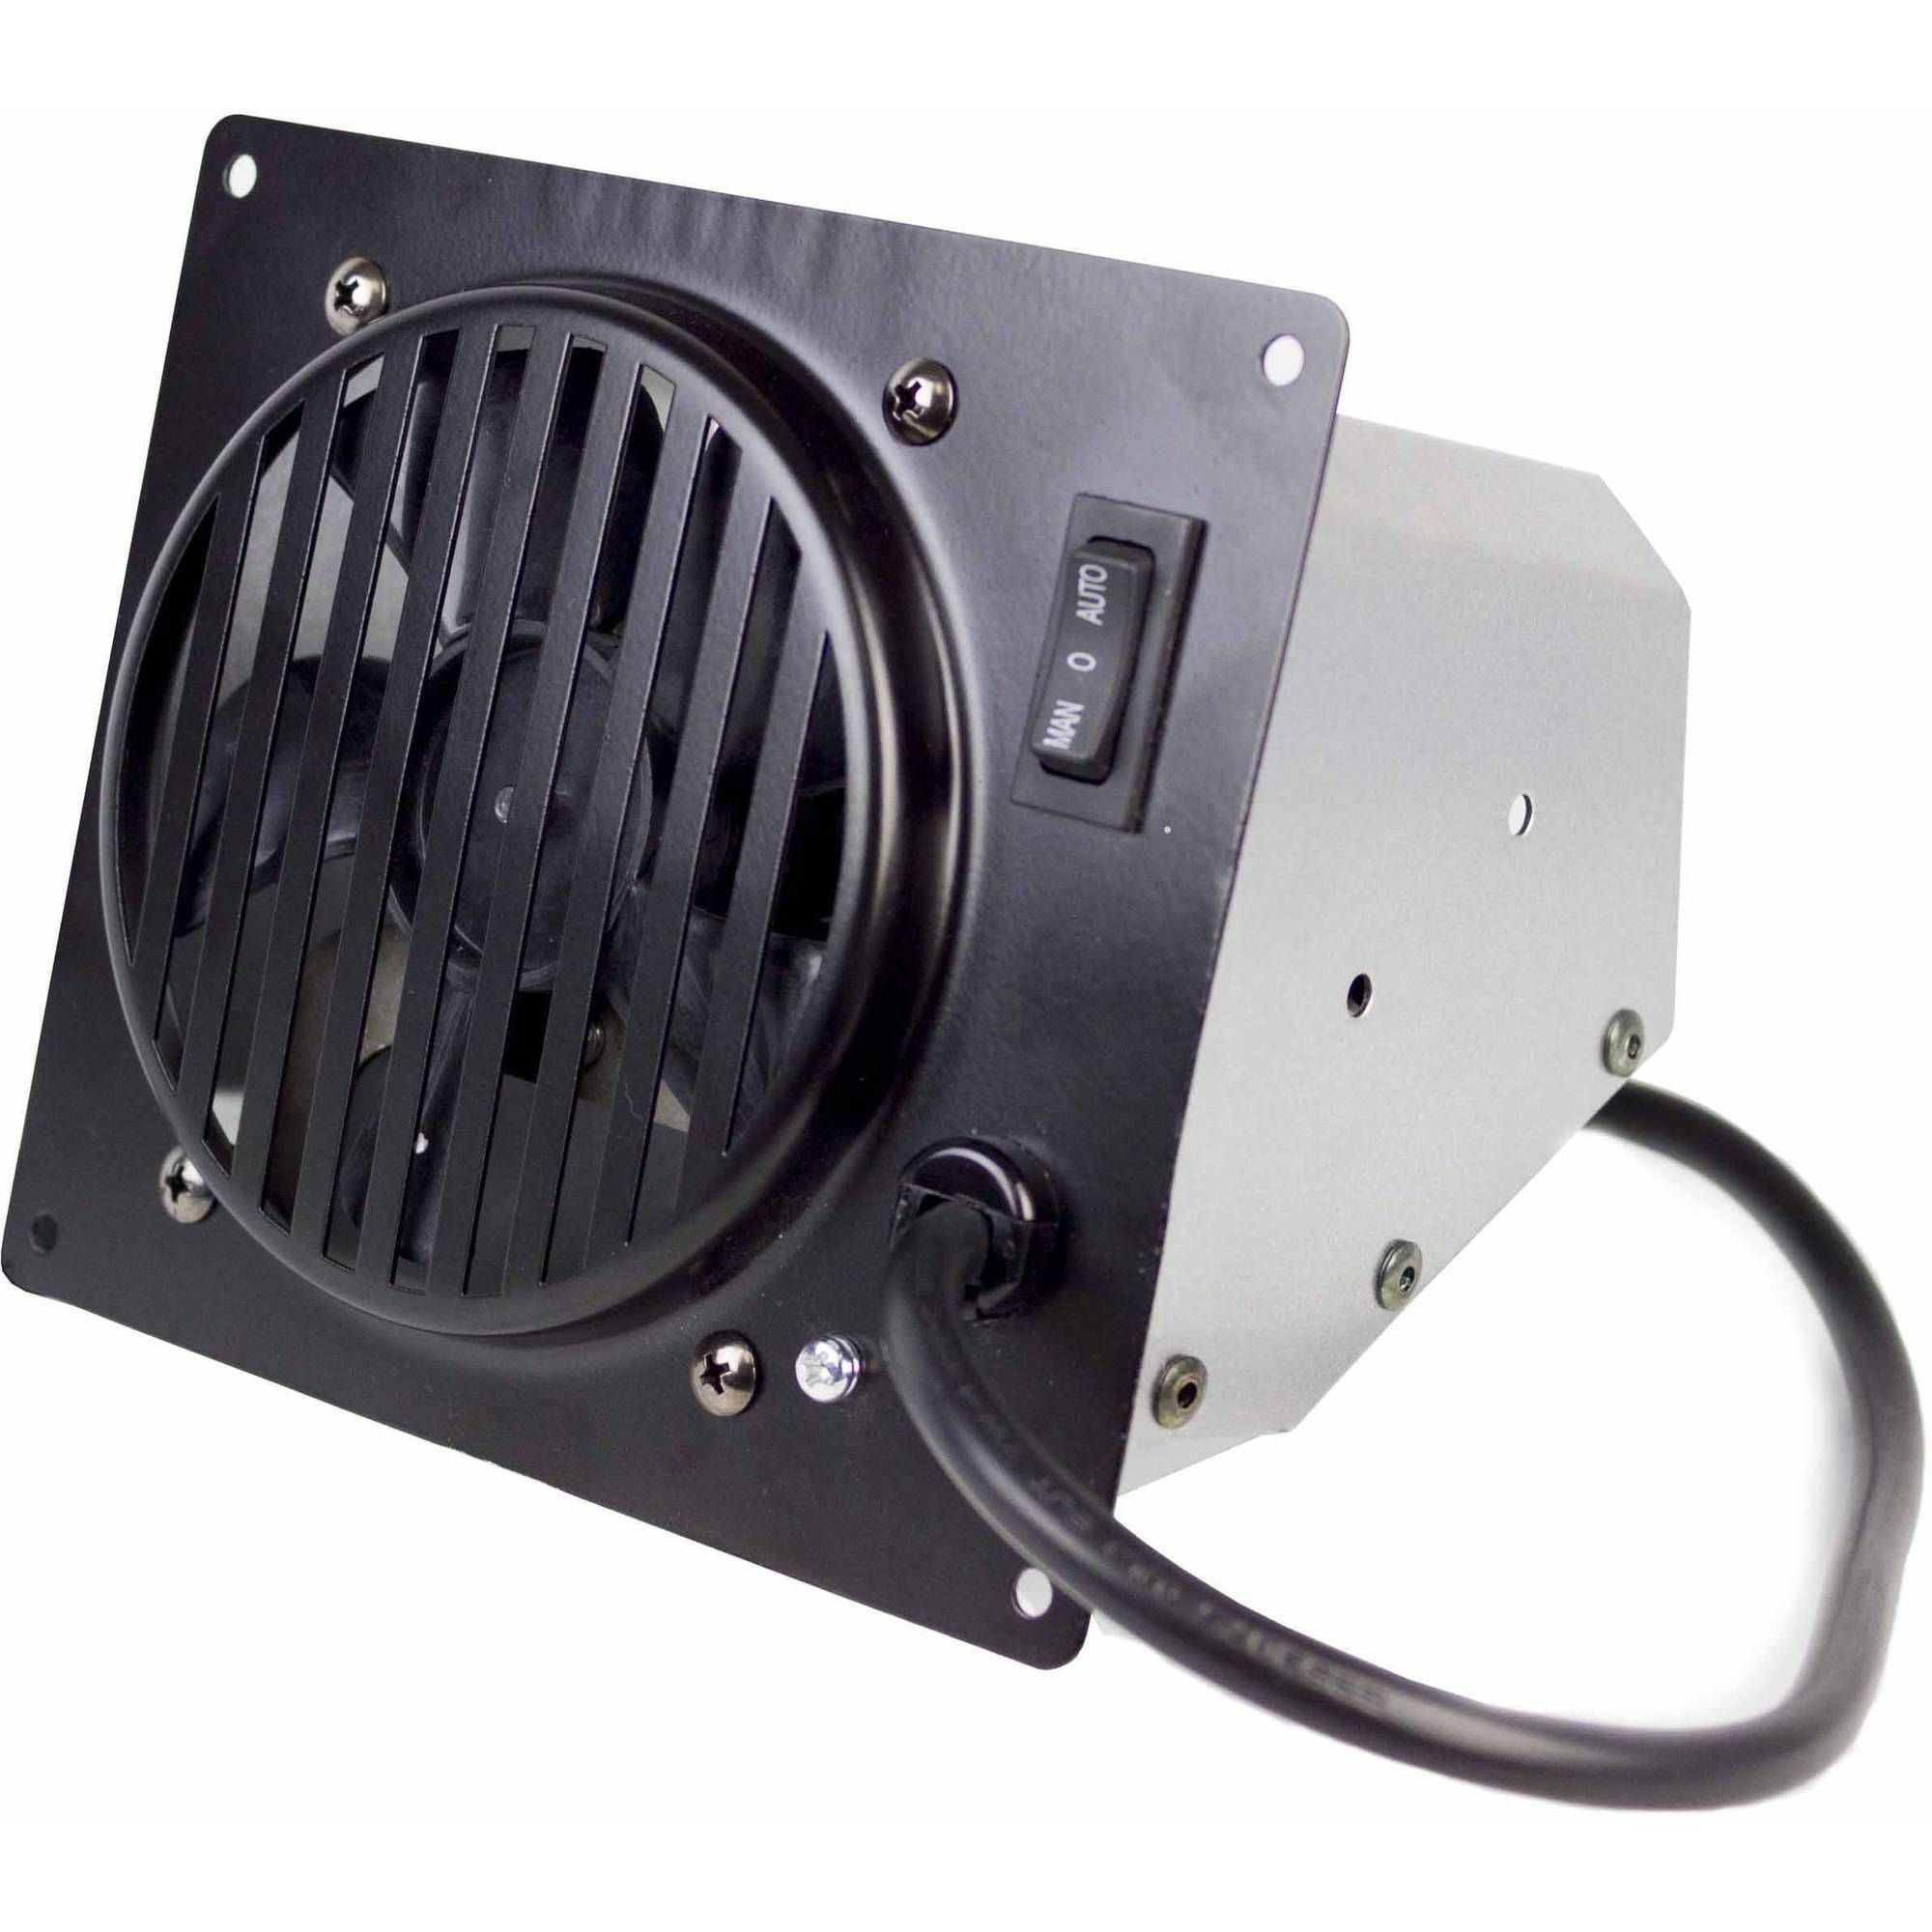 Dyna Glo Whf100 Vent Free Wall Heater Fan Deal